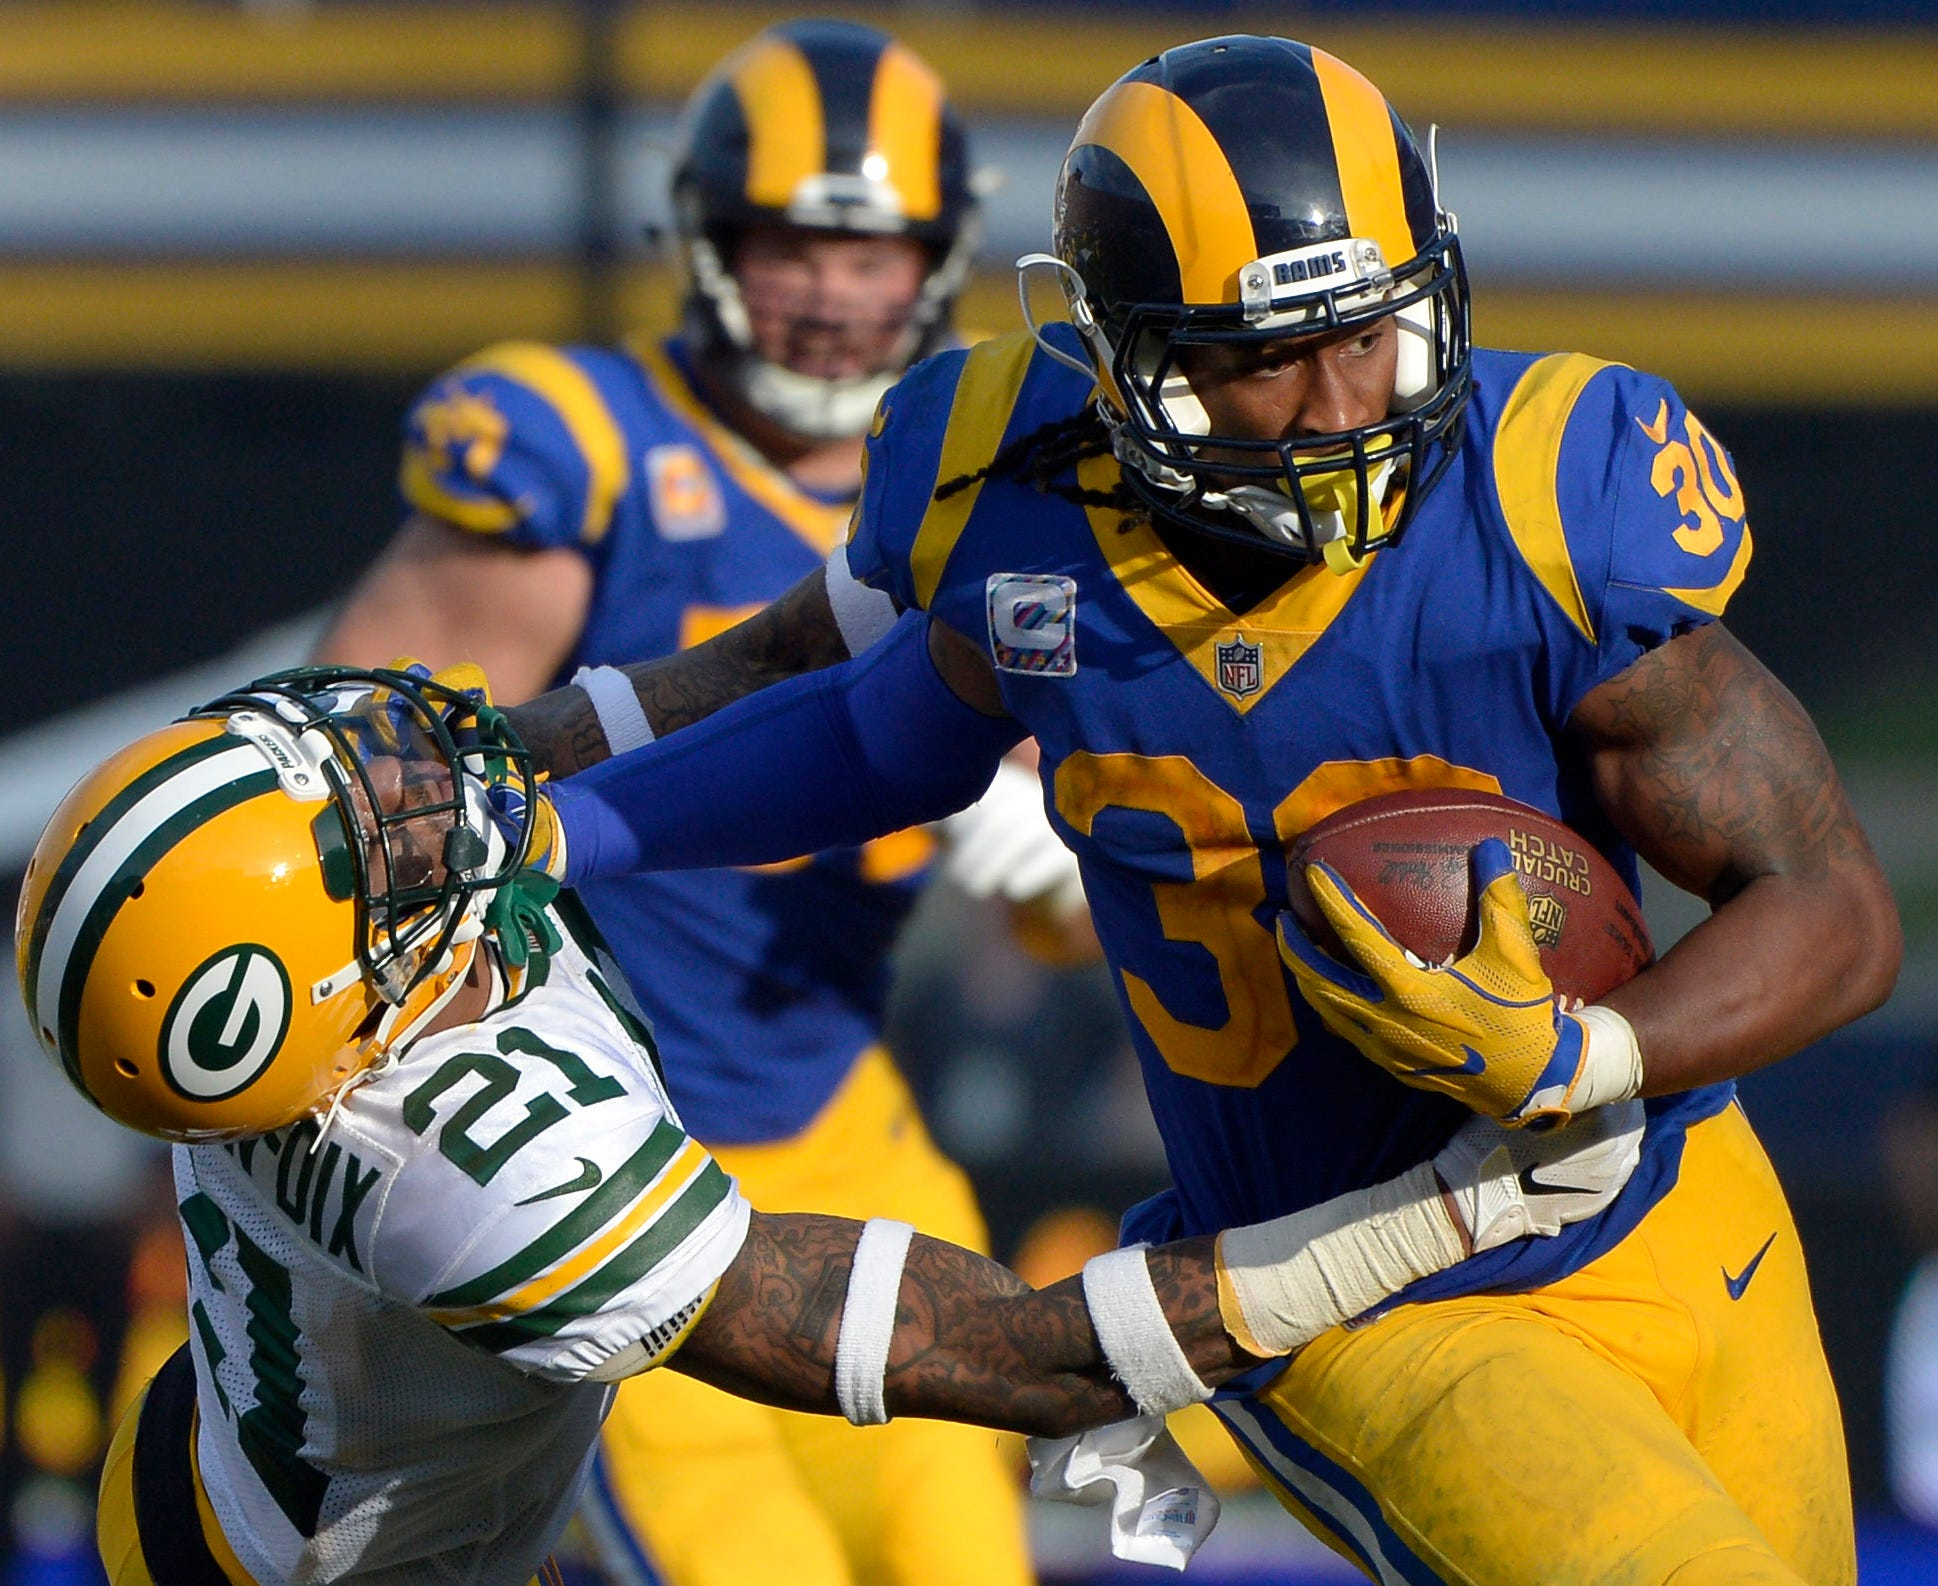 Nfl Green Bay Packers At Los Angeles Rams